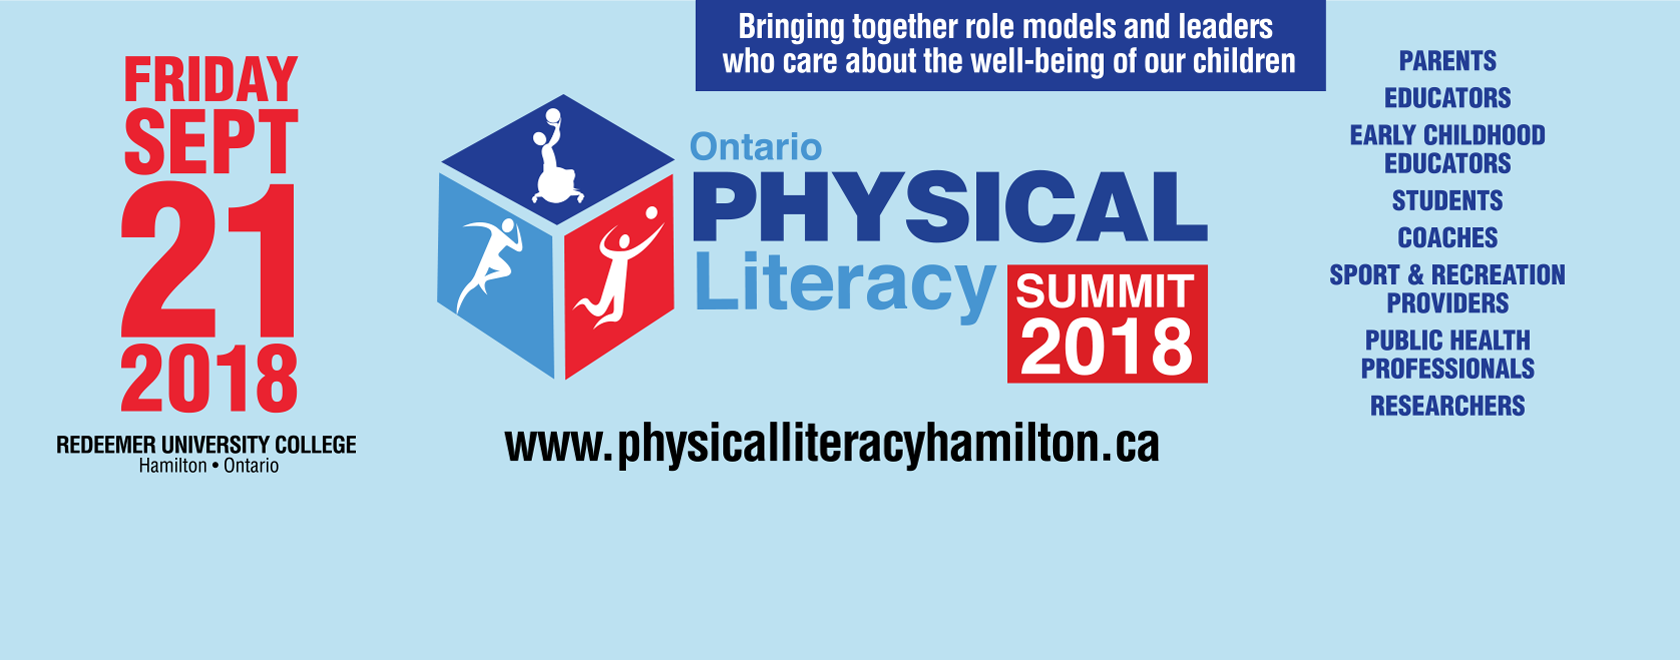 Banner for Ontario Physical Literacy Summit